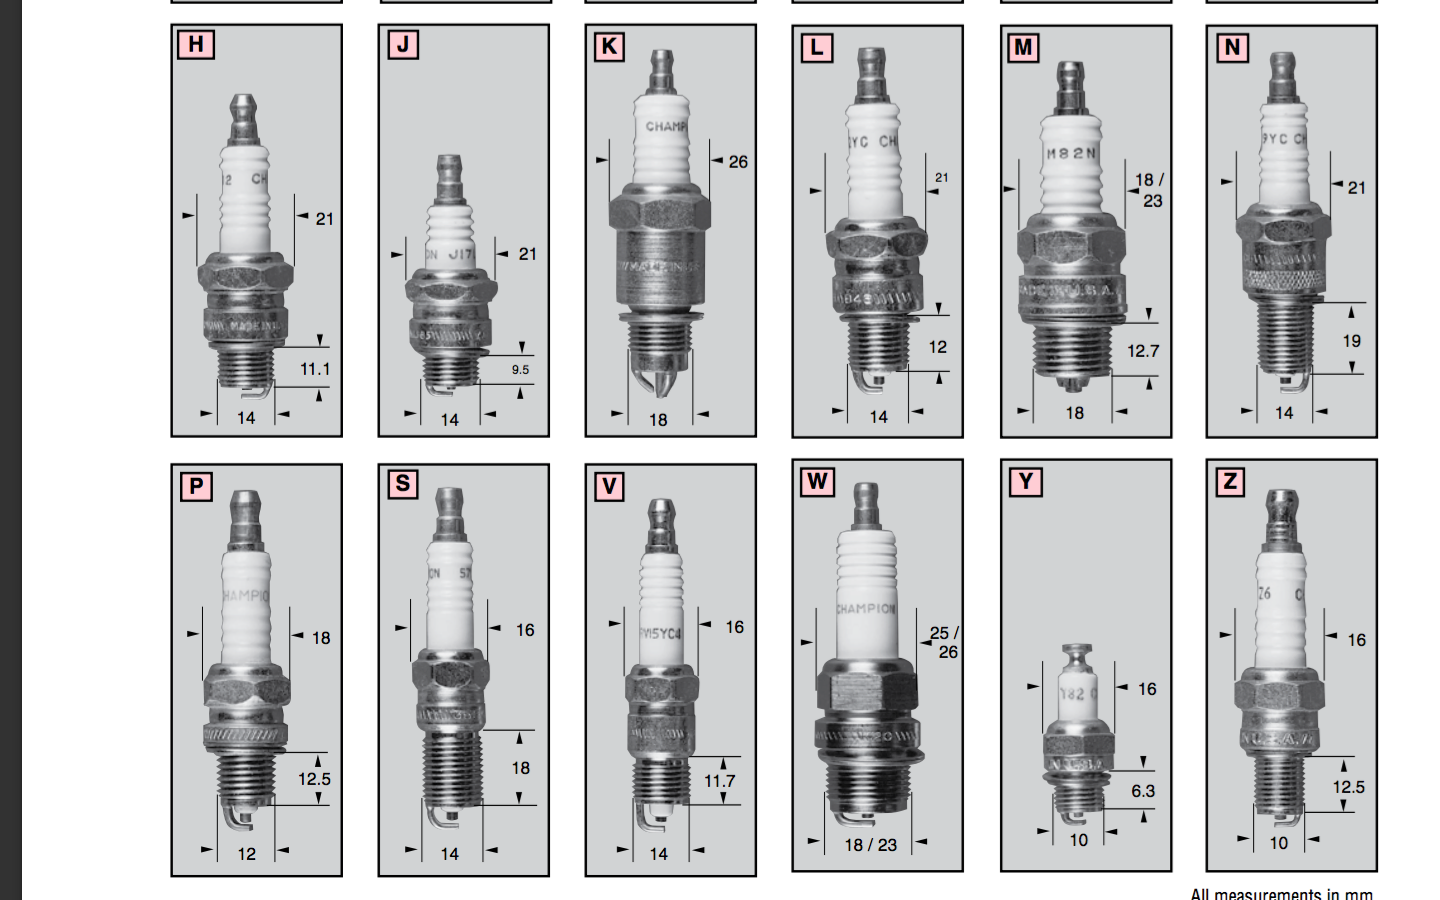 Spark plug cross reference - Engines - RedSquare Wheel Horse